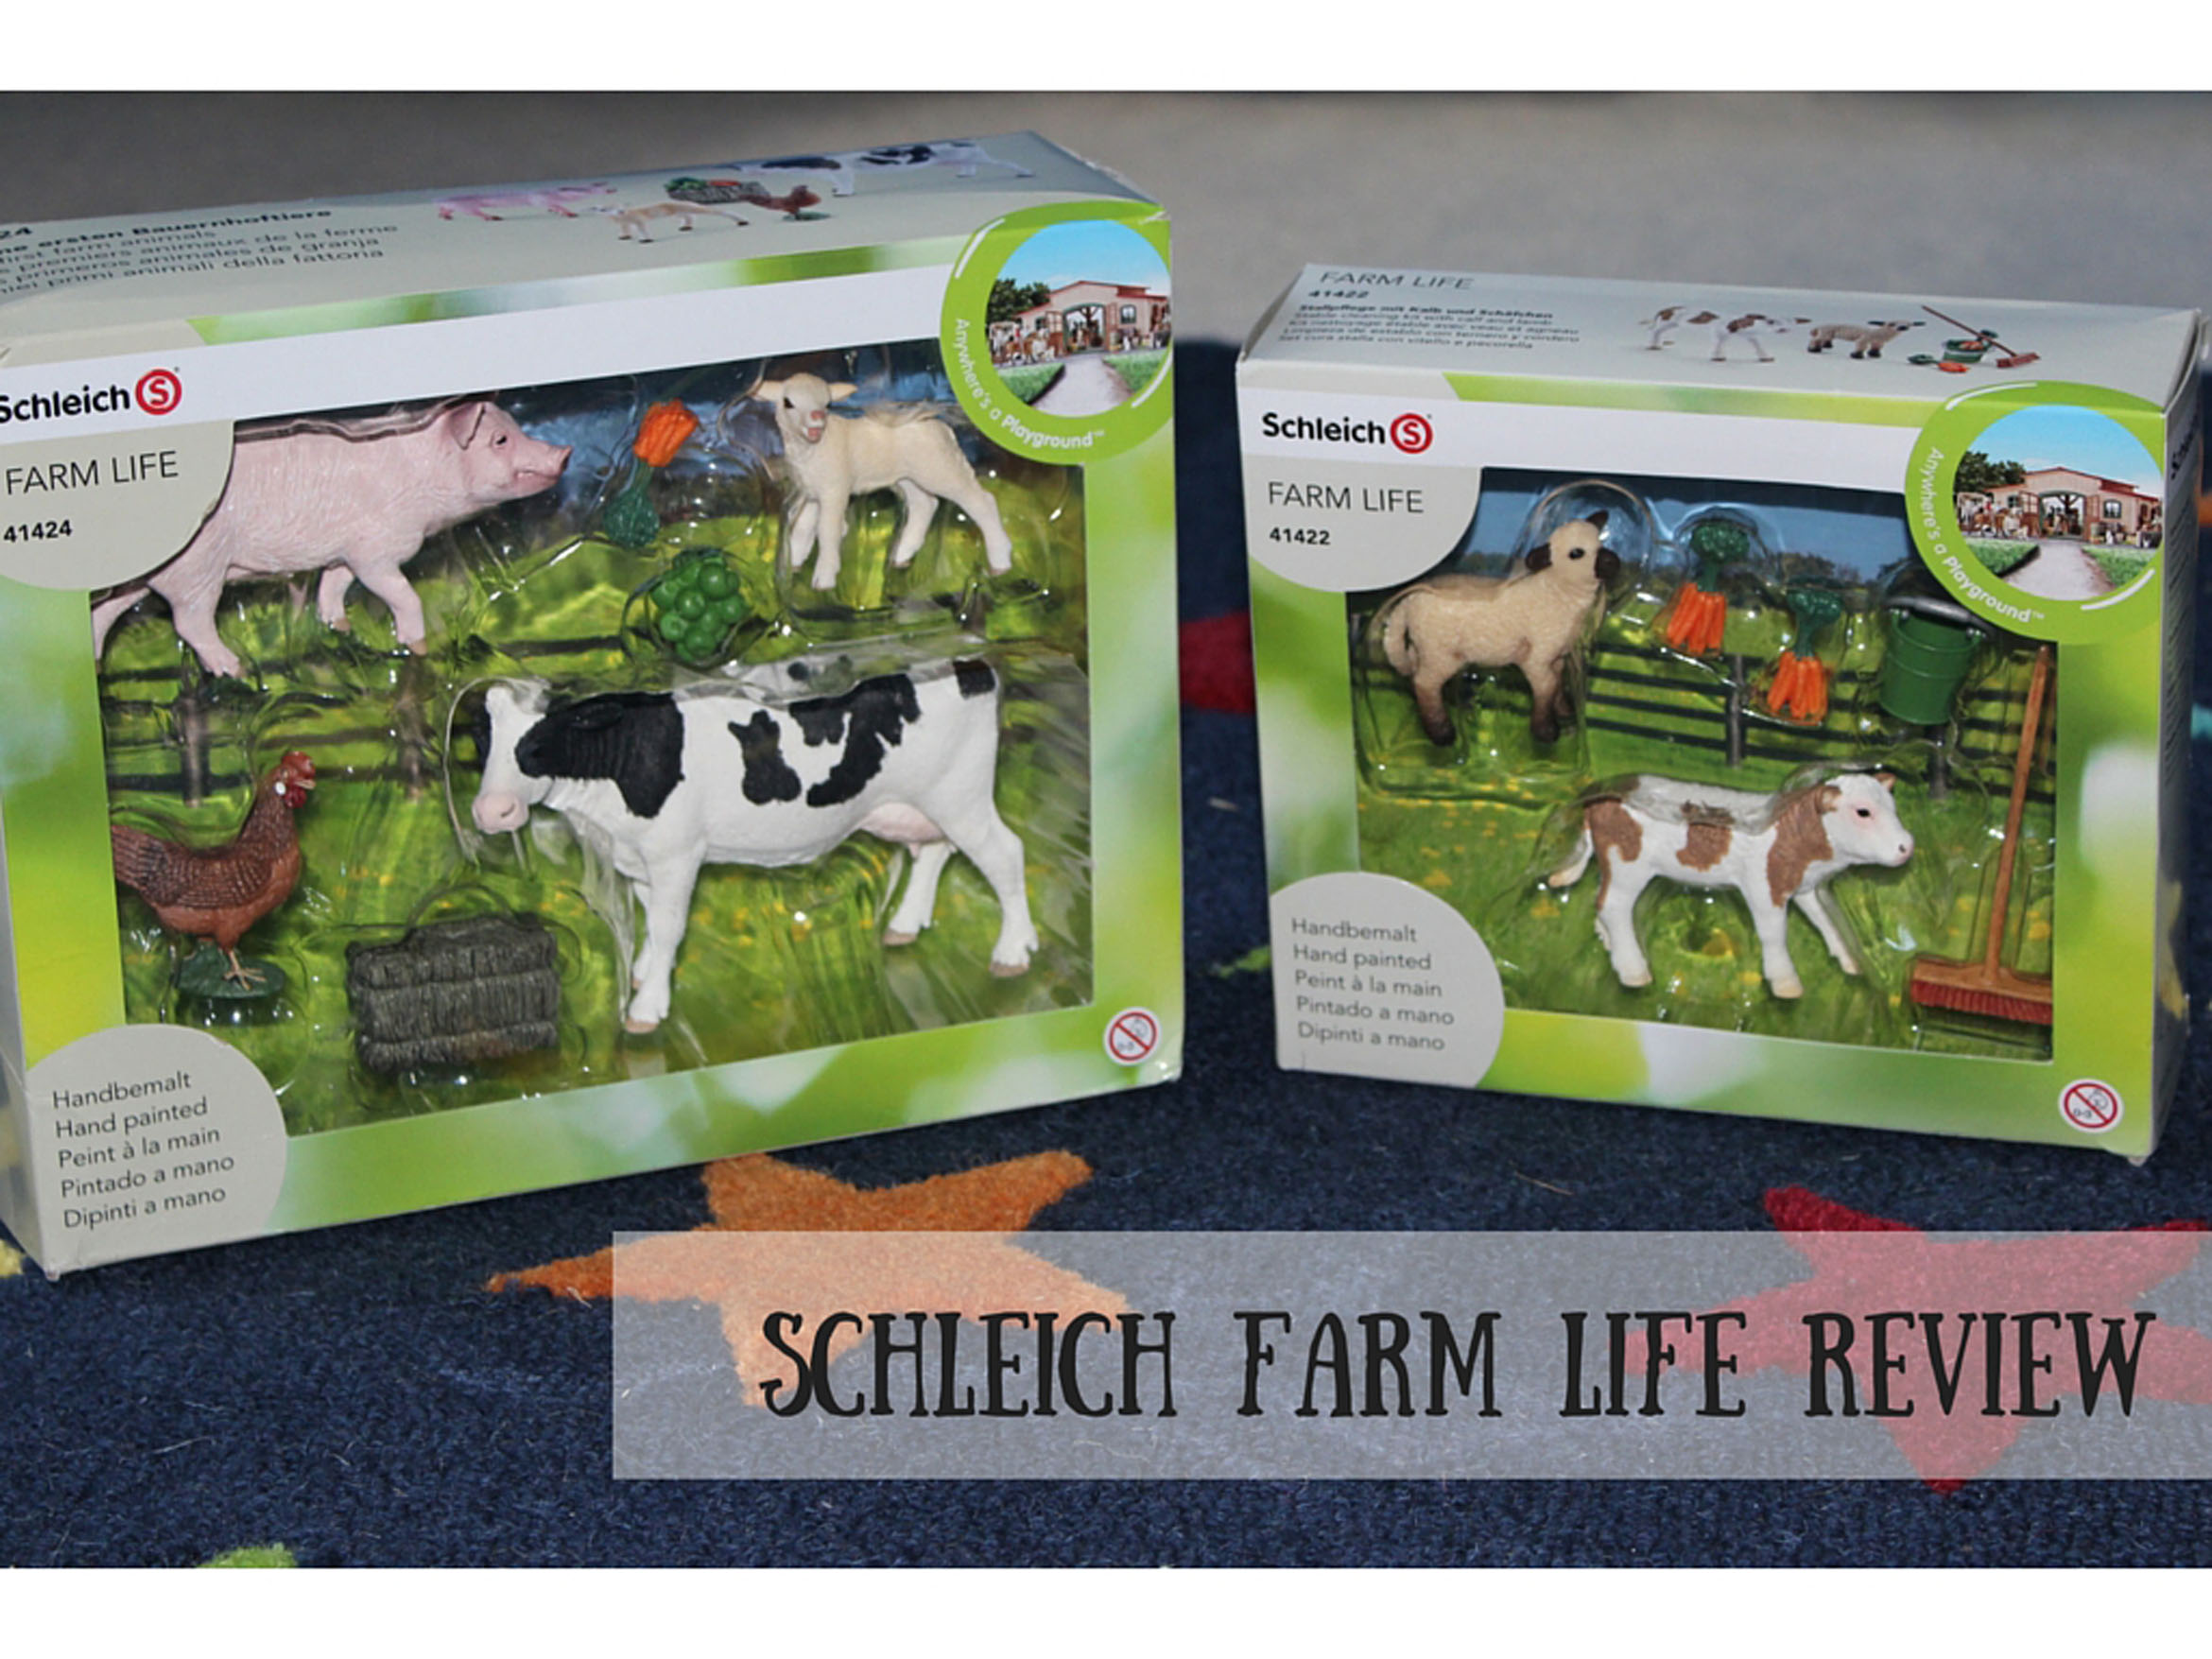 Schleich Farm Life Review